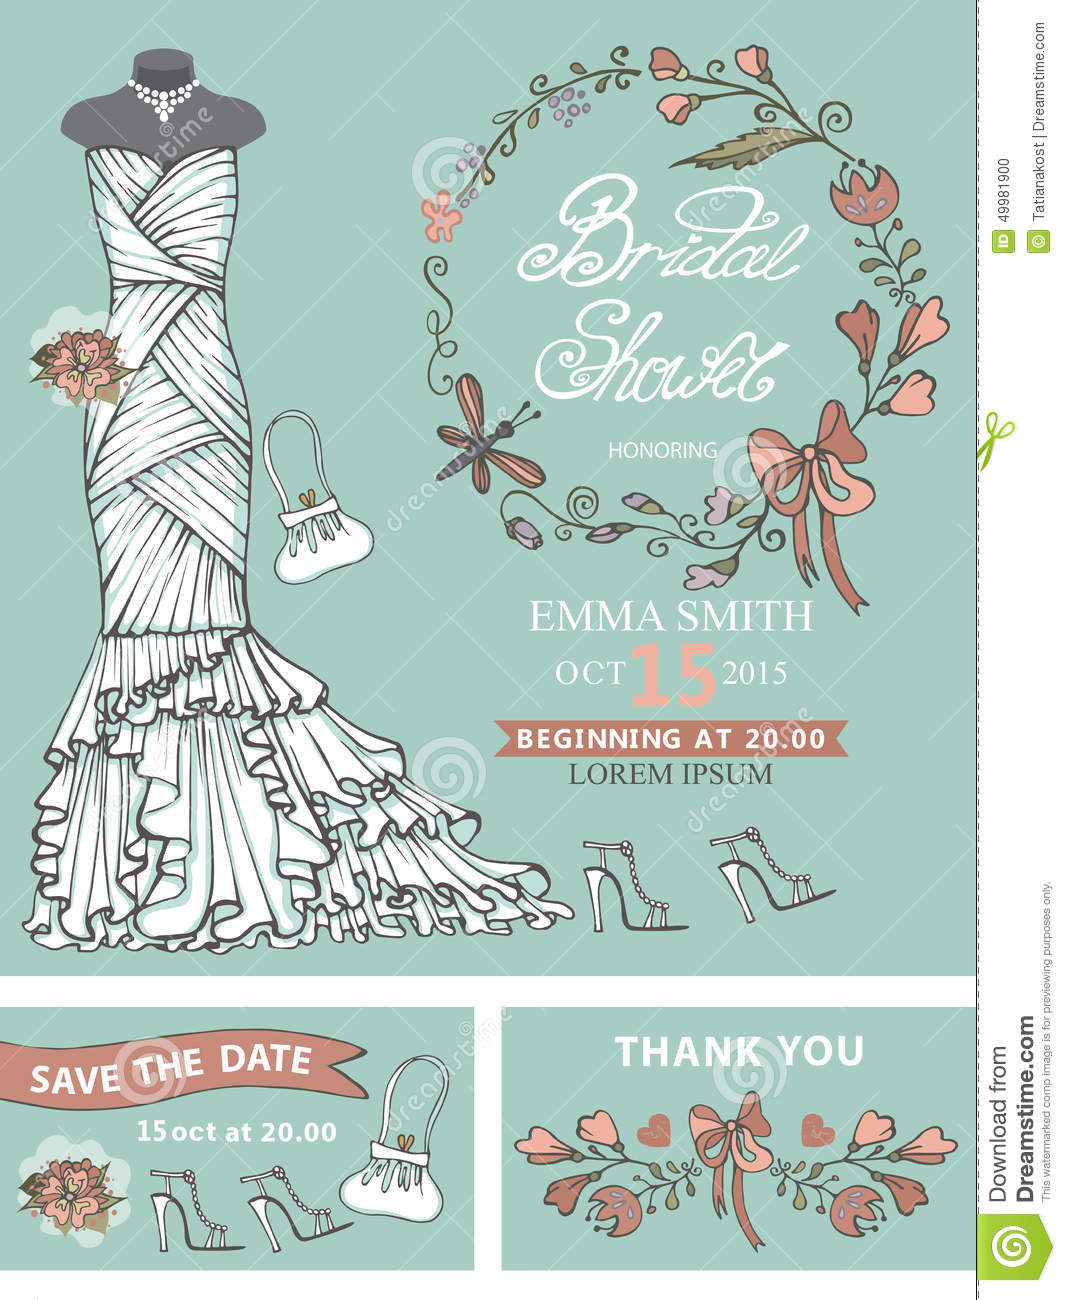 Bridal Shower Invitation Template for great invitation example